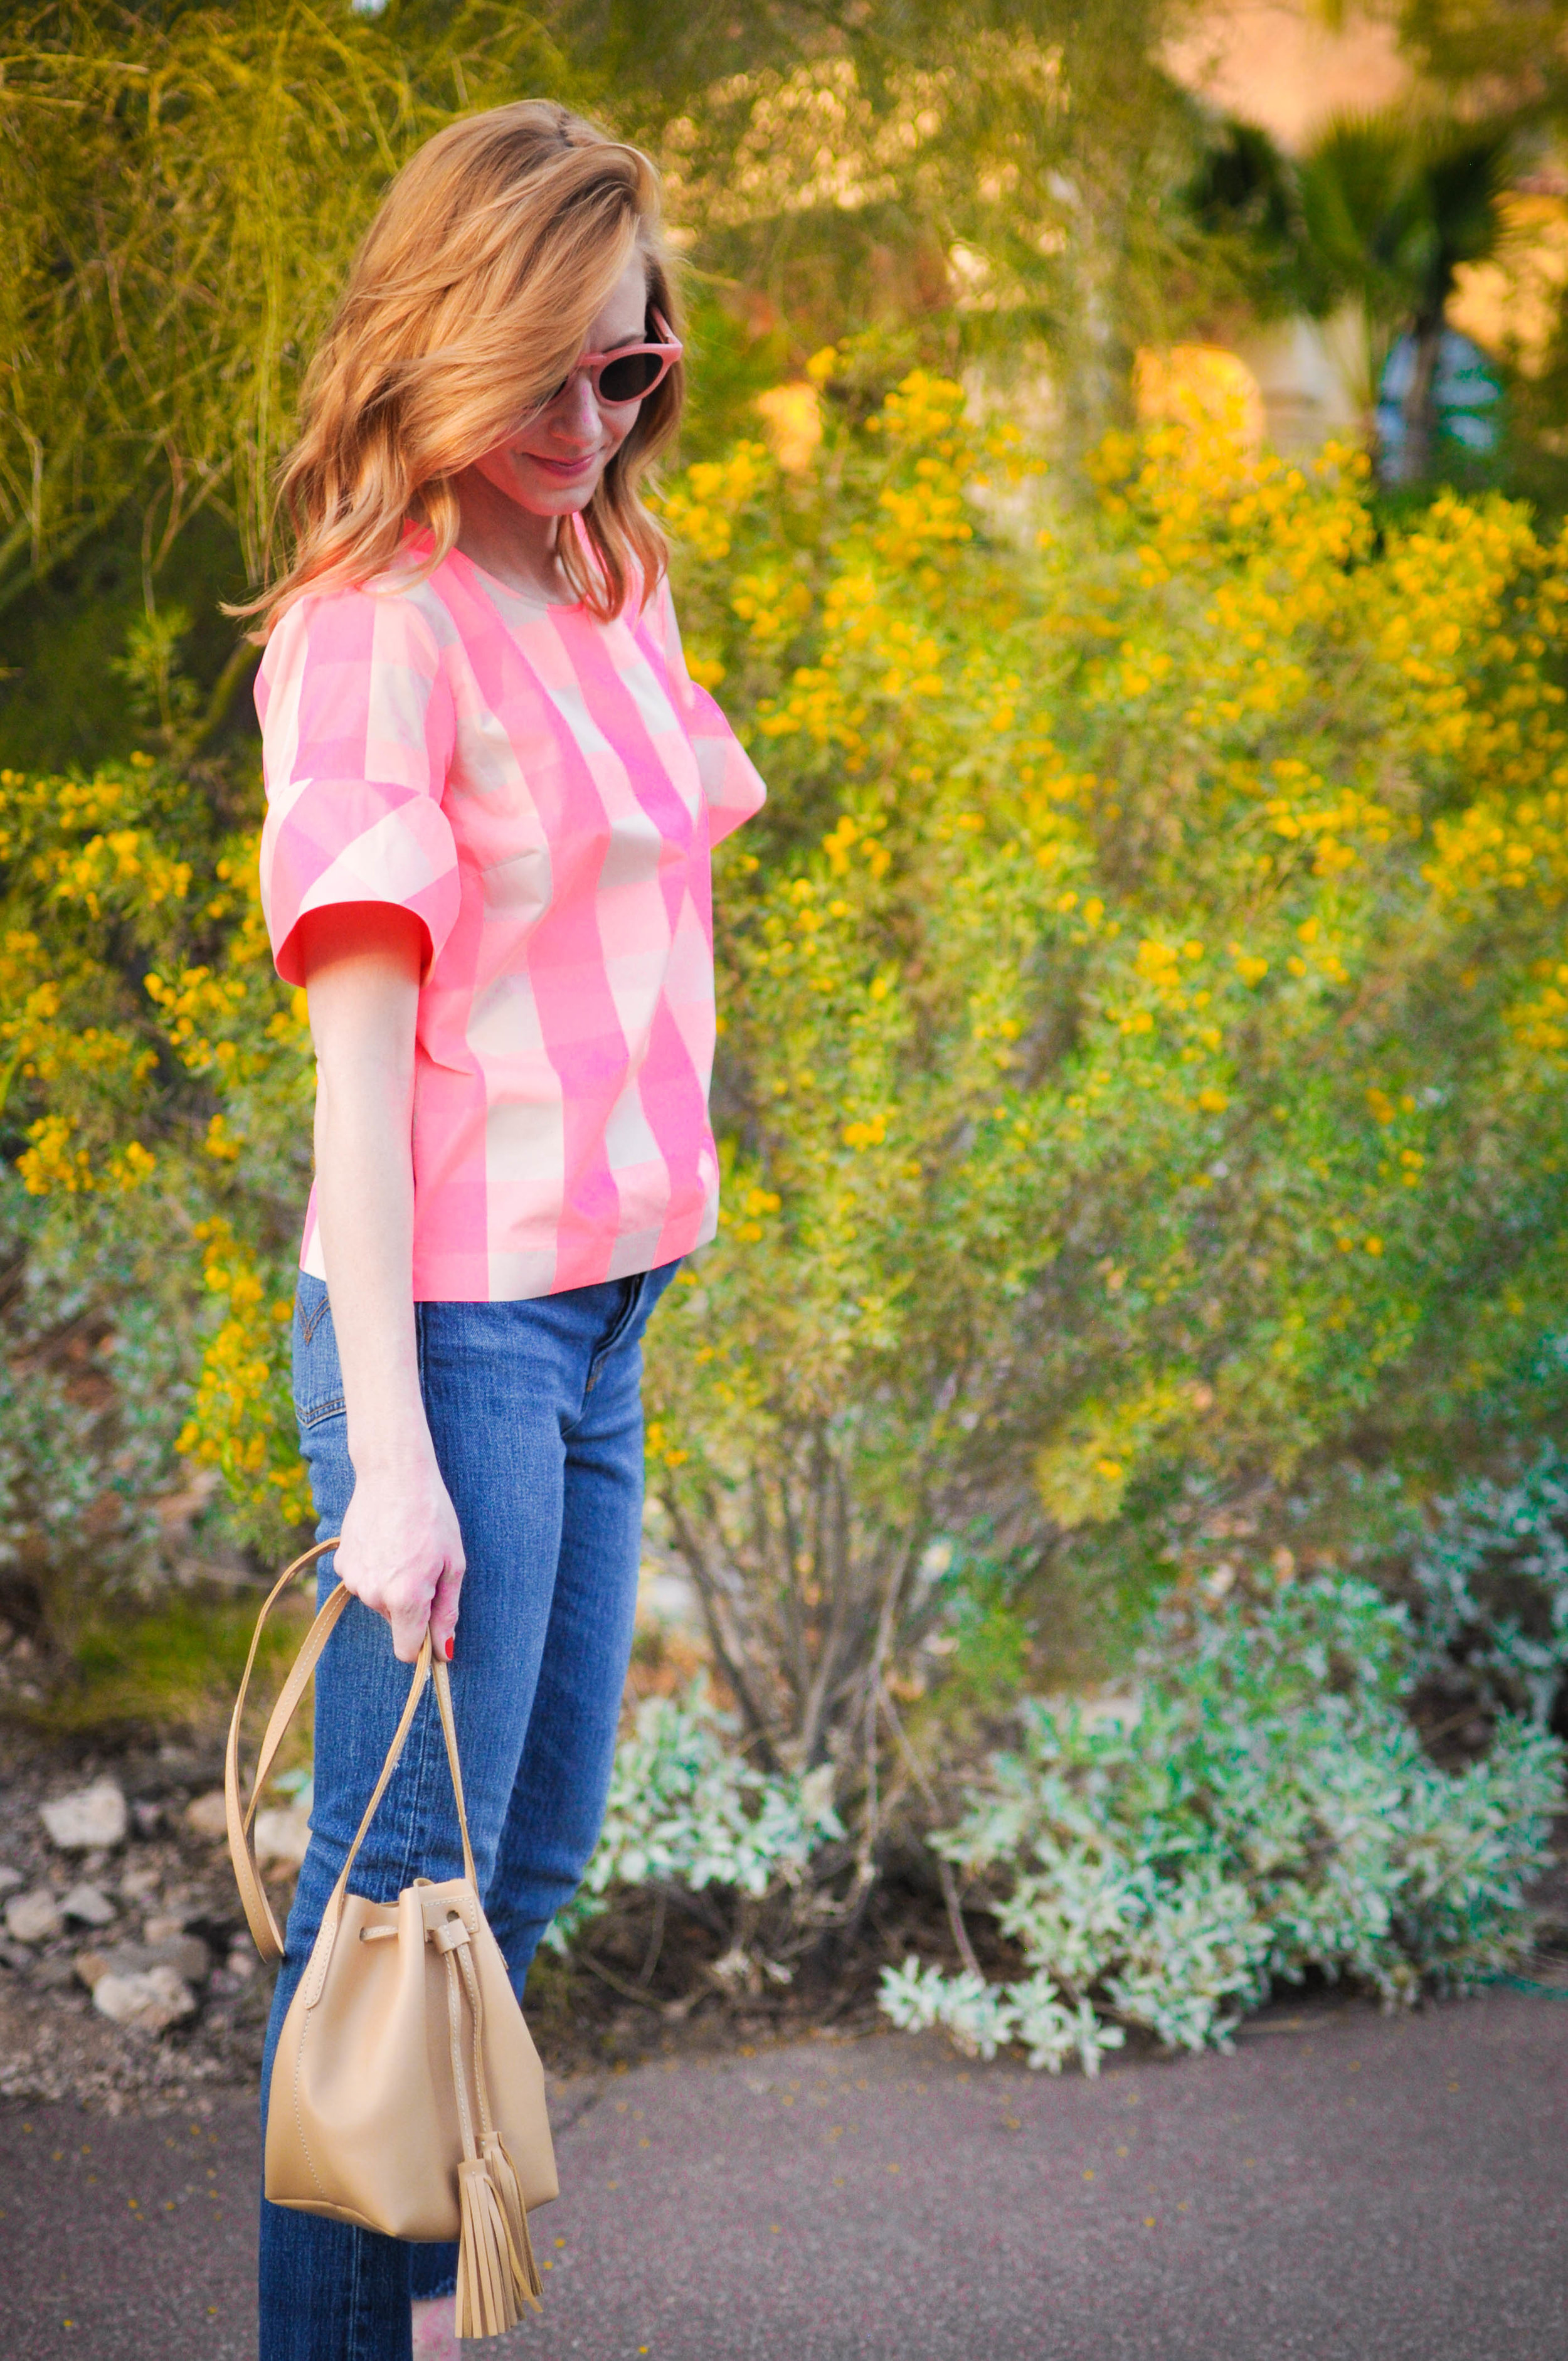 Woman in pink top and jeans at sunset